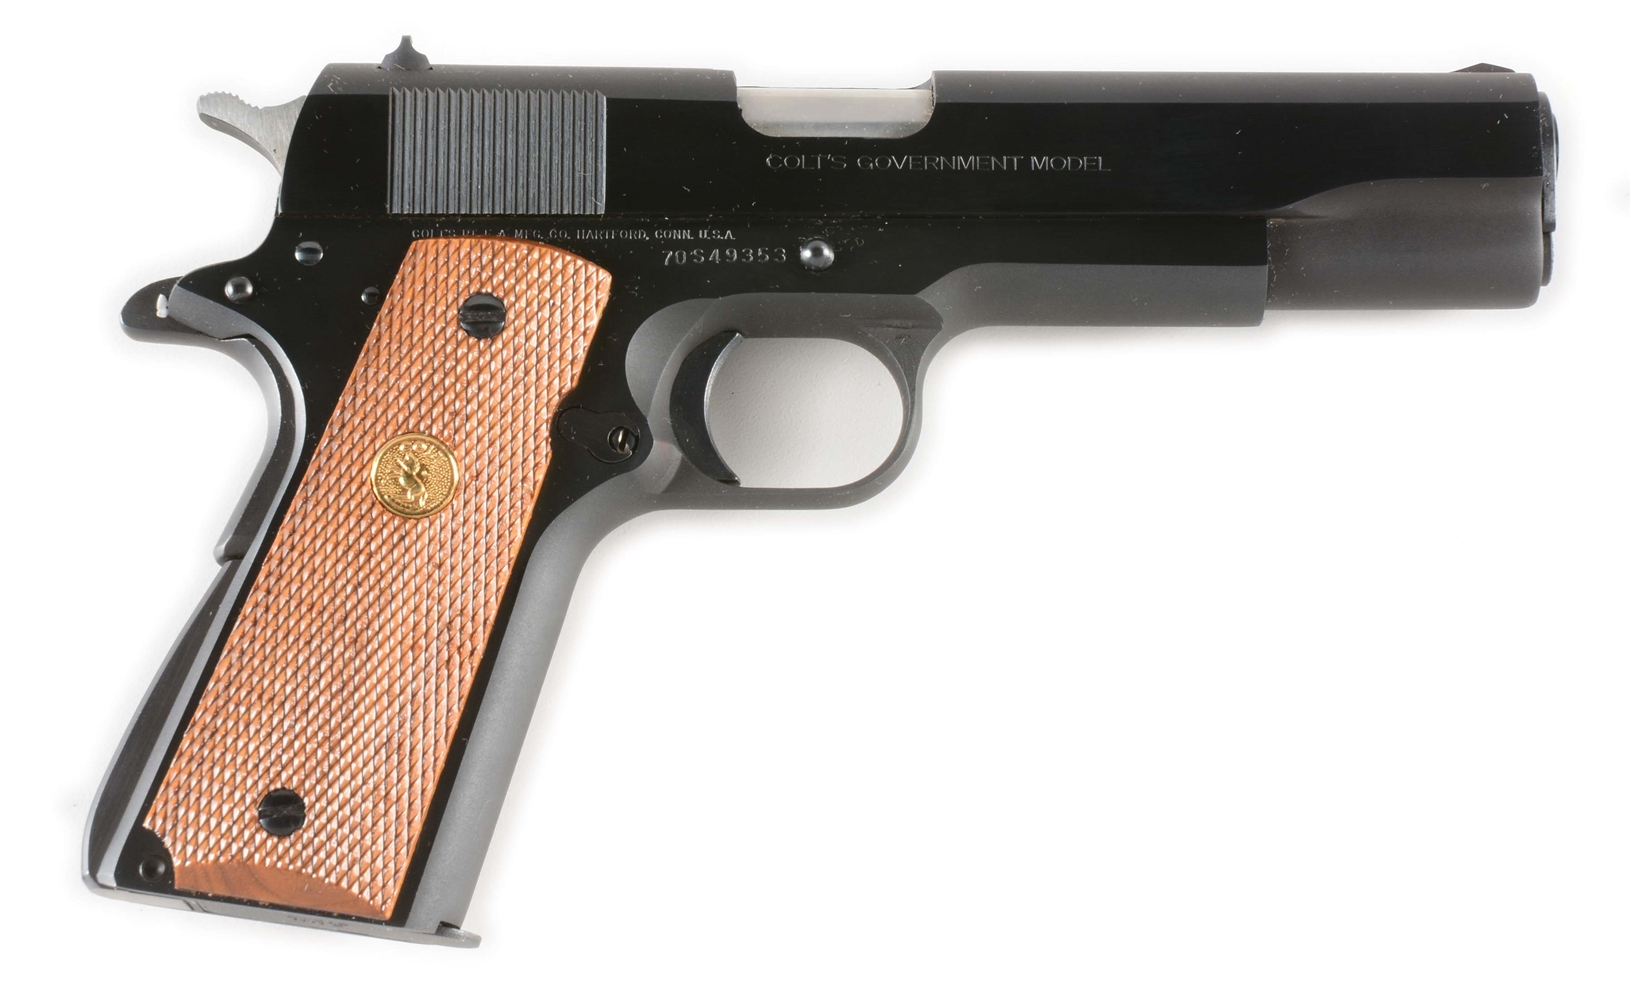 (M) COLT GOVERNMENT MODEL MARK IV SERIES 70 SEMI-AUTOMATIC PISTOL IN BOX.